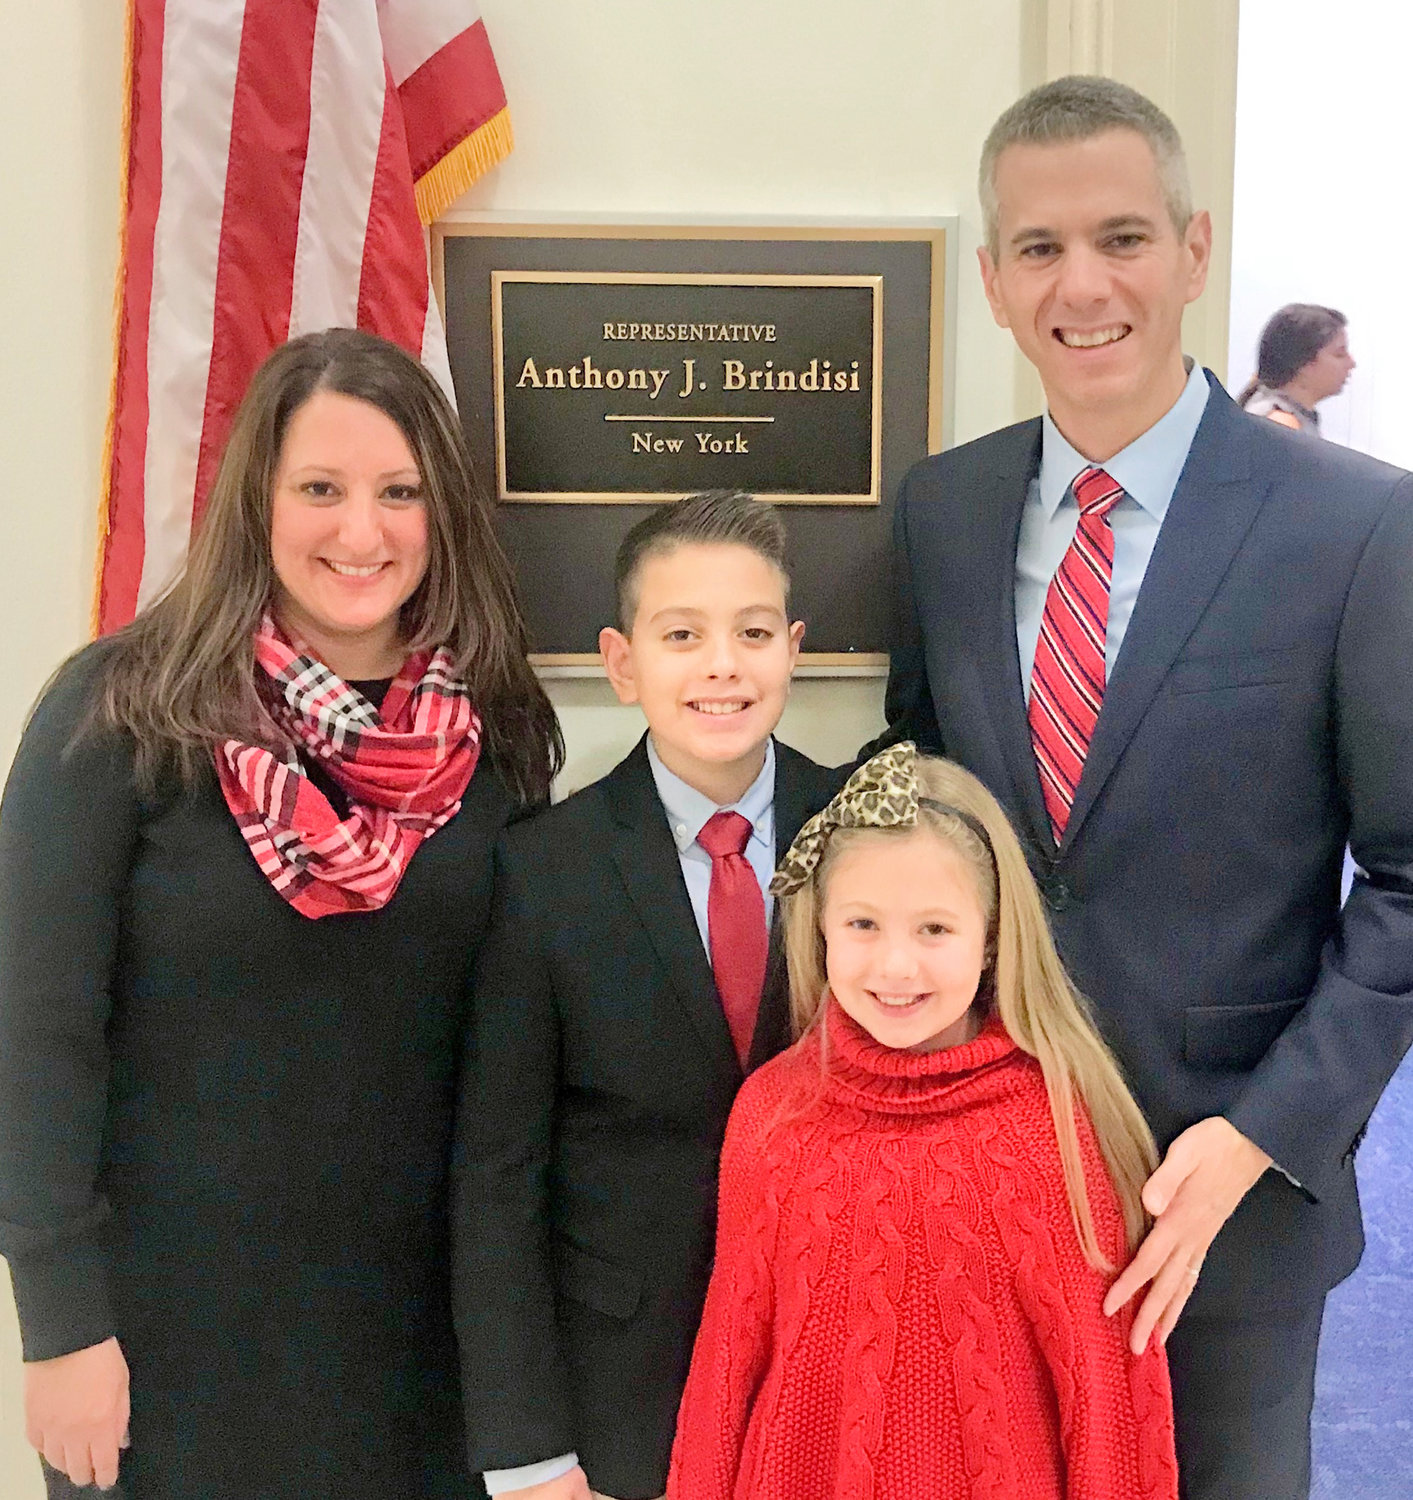 CONGRESSIONAL FAMILY — New Congressman Anthony Brindisi of New York's 22nd District poses outside his Washington office with his wife, Erica McGovern Brindisi and their children Anthony Jr. and Lily Grace. Brindisi, a former state Assembly member and lawyer from Utica, was elected in November and sworn into office Thursday.